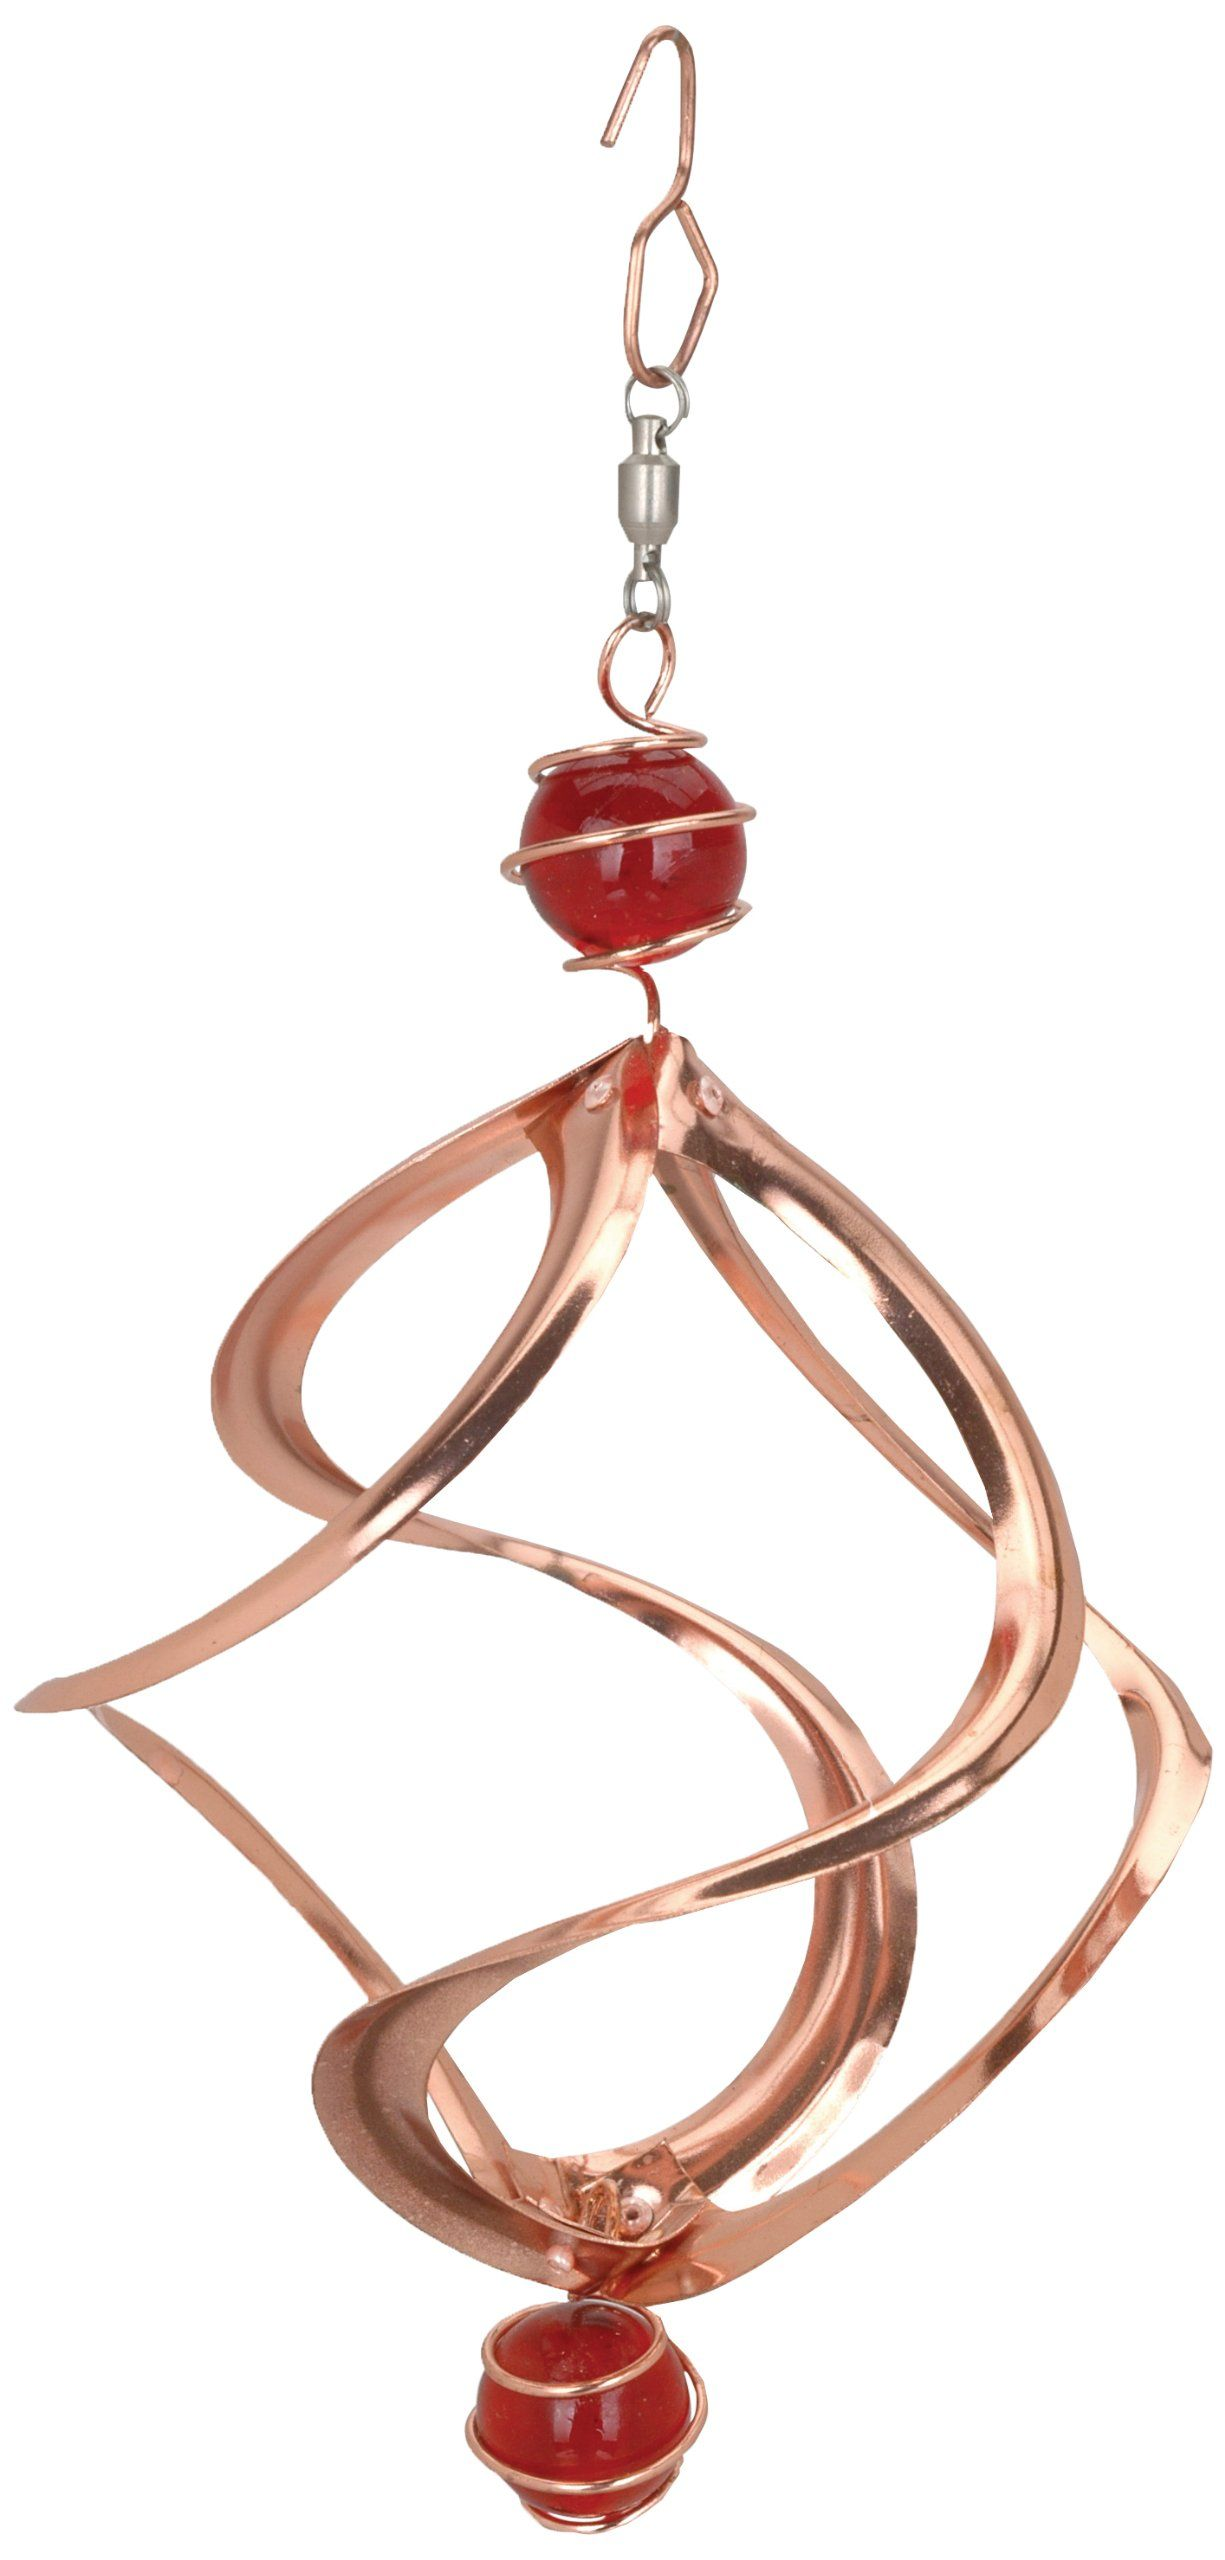 Red Carpet Studios Cosmix Copper Wind Spinner With Marbles Small S Hook Swivel For Easy Hanging And Smooth Spinning